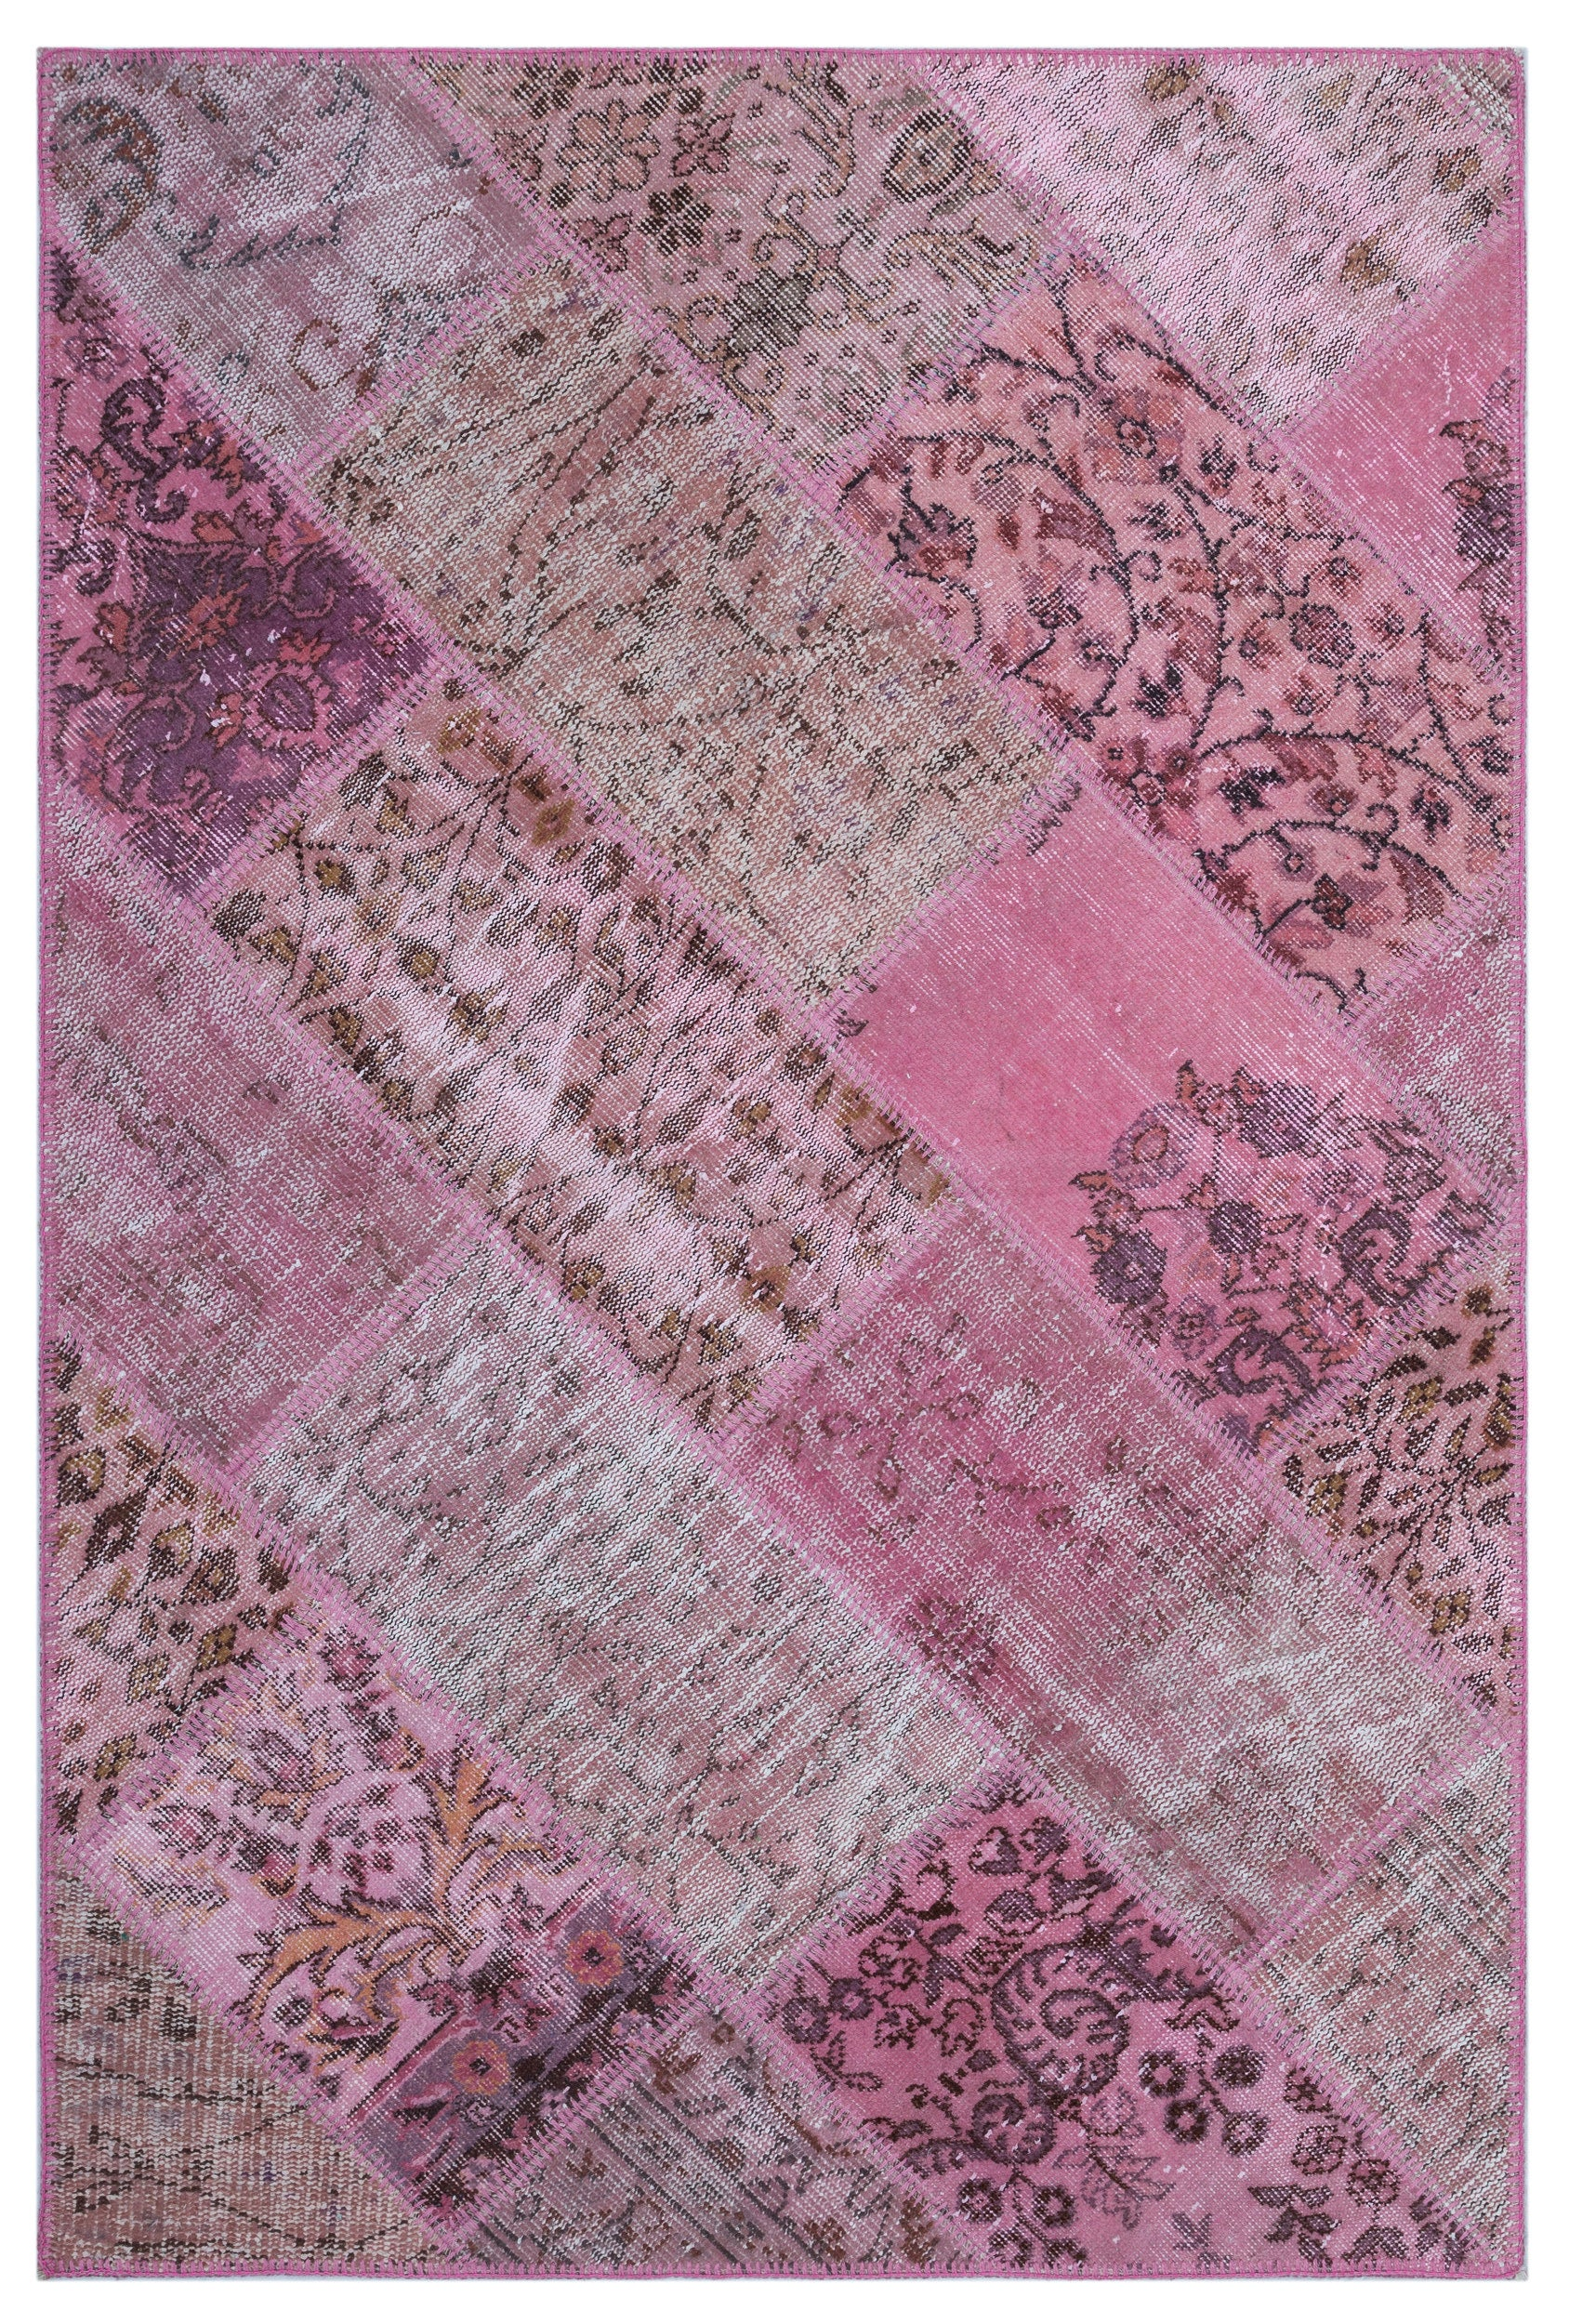 Pink Over Dyed Patchwork Unique Rug 3'11'' x 5'11'' ft 120 x 180 cm